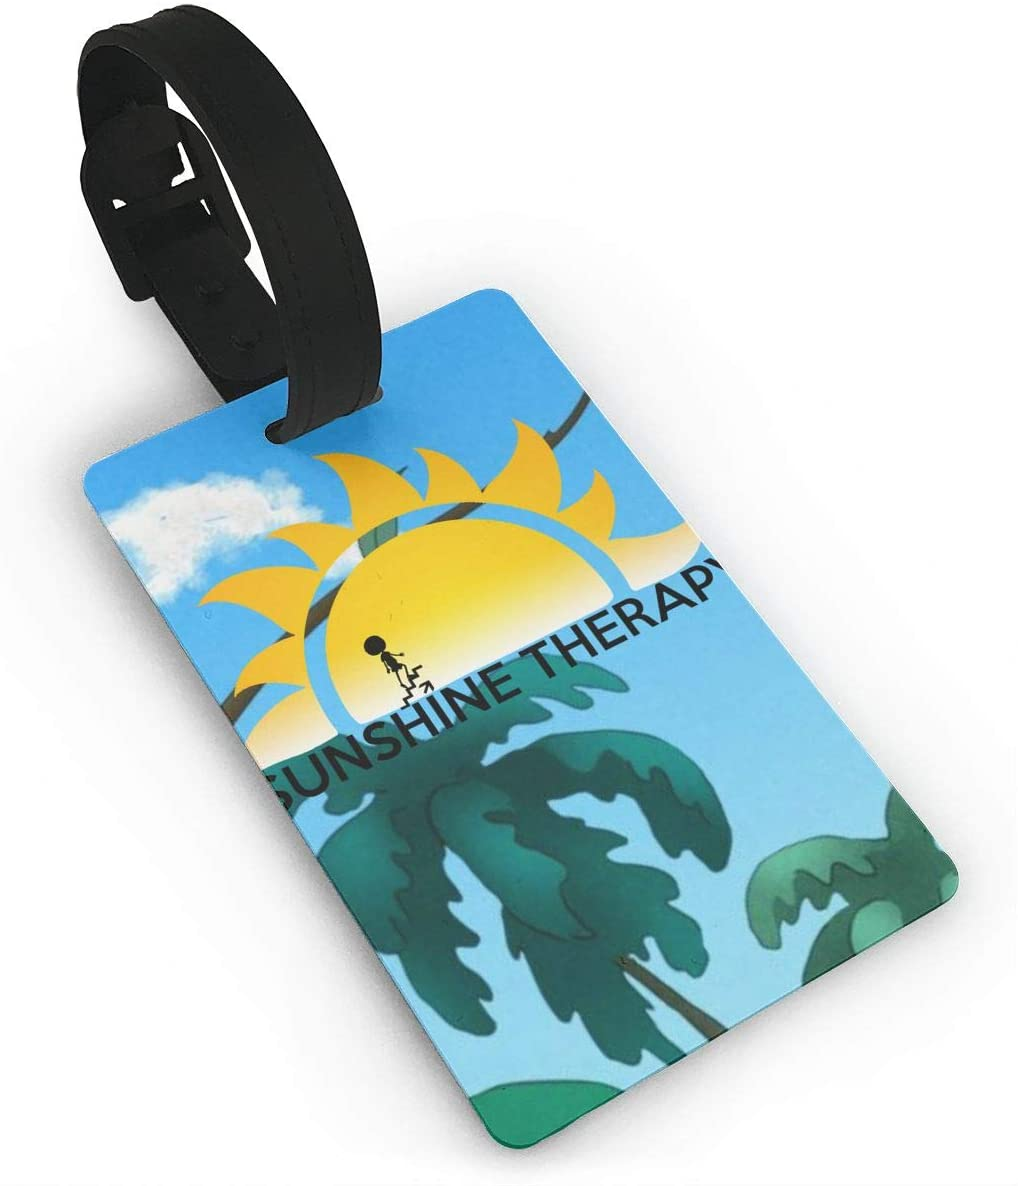 Bring On The Sunshine logo PVC Luggage Tag With Name ID Card Perfect lightweight and easy to carry for Travel Baggage to Quickly Spot Luggage Suitcase